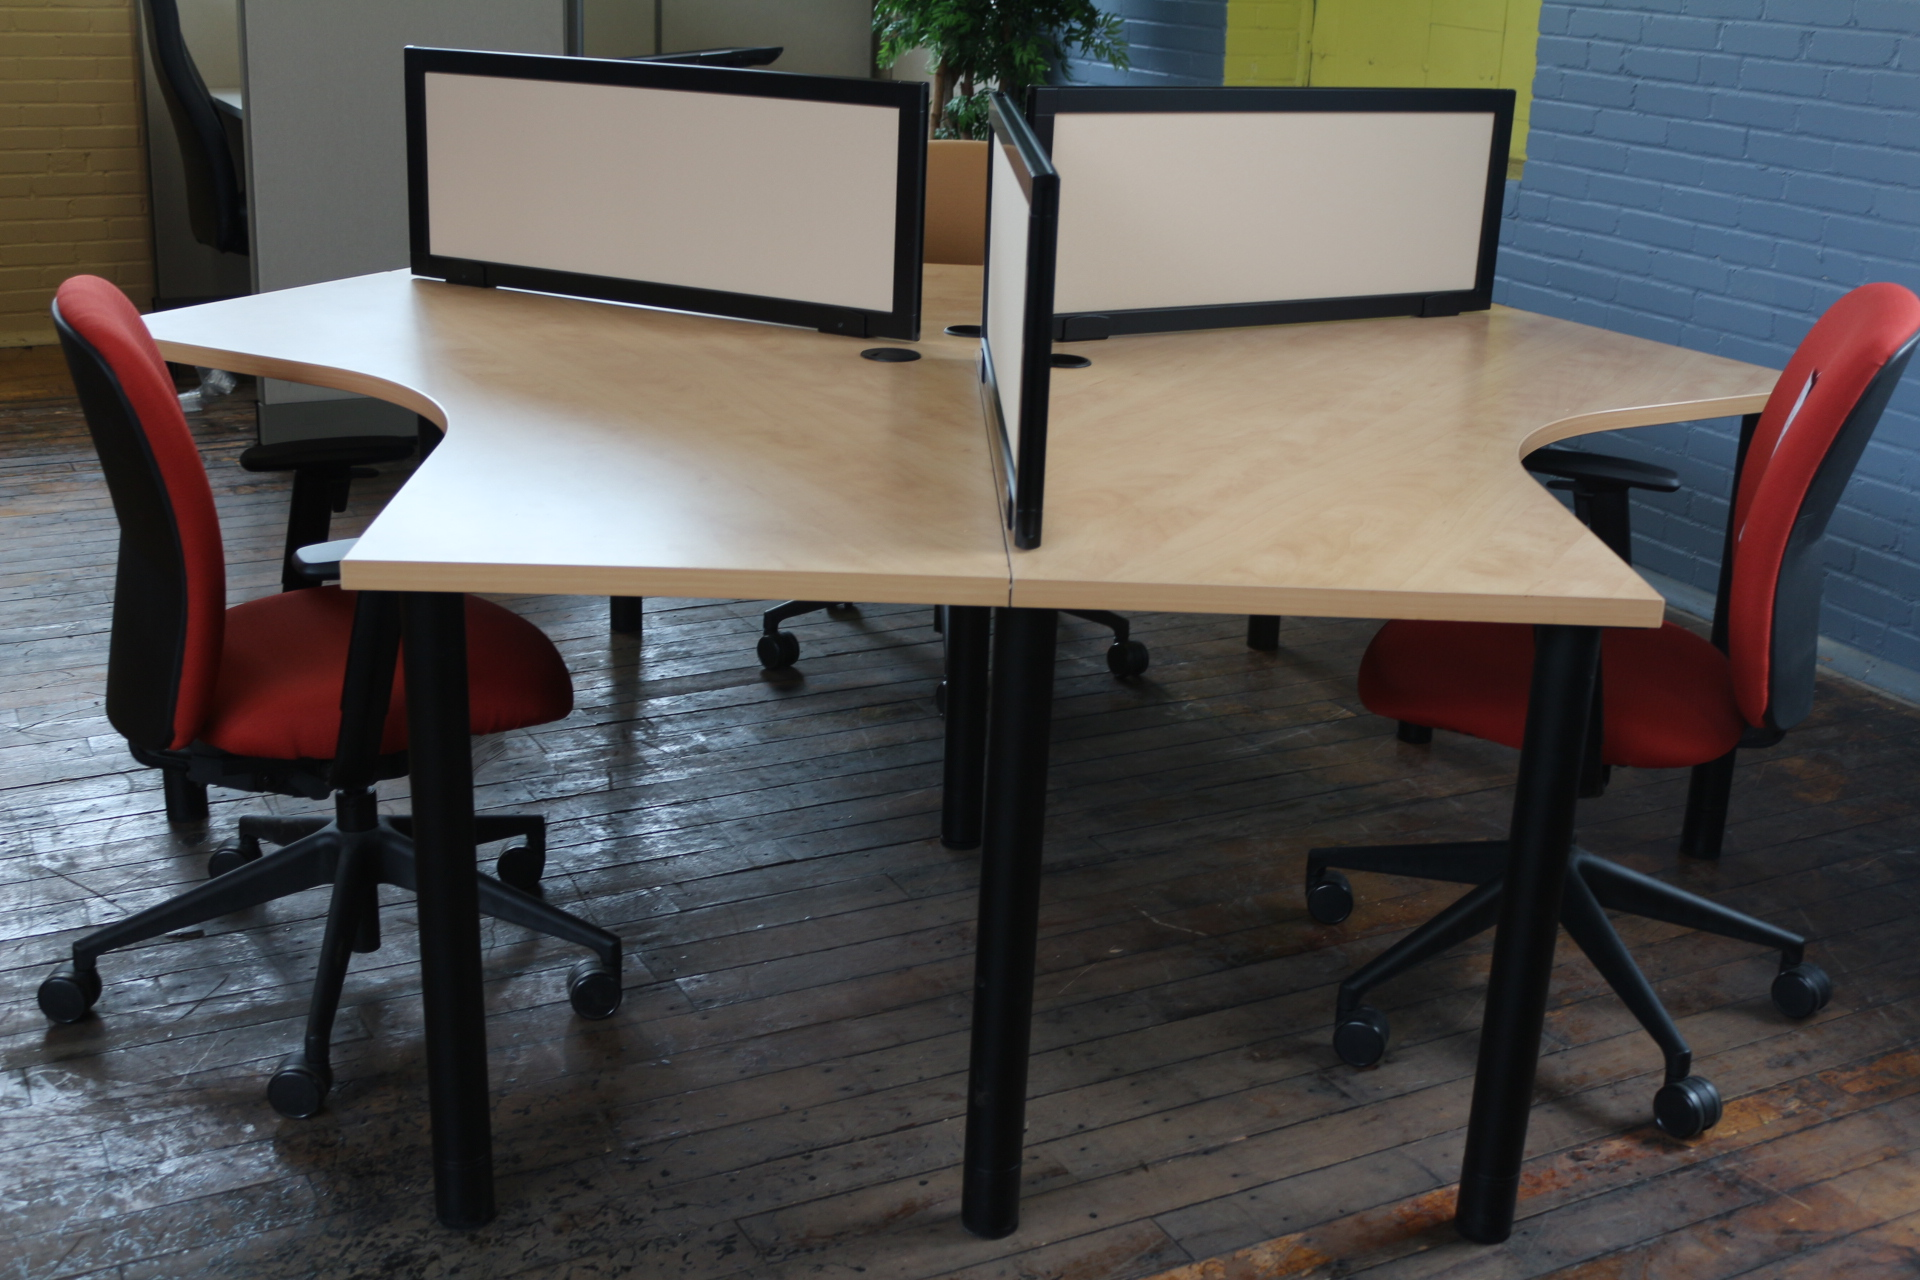 Open plan workstations with Turnstone worksurfaces